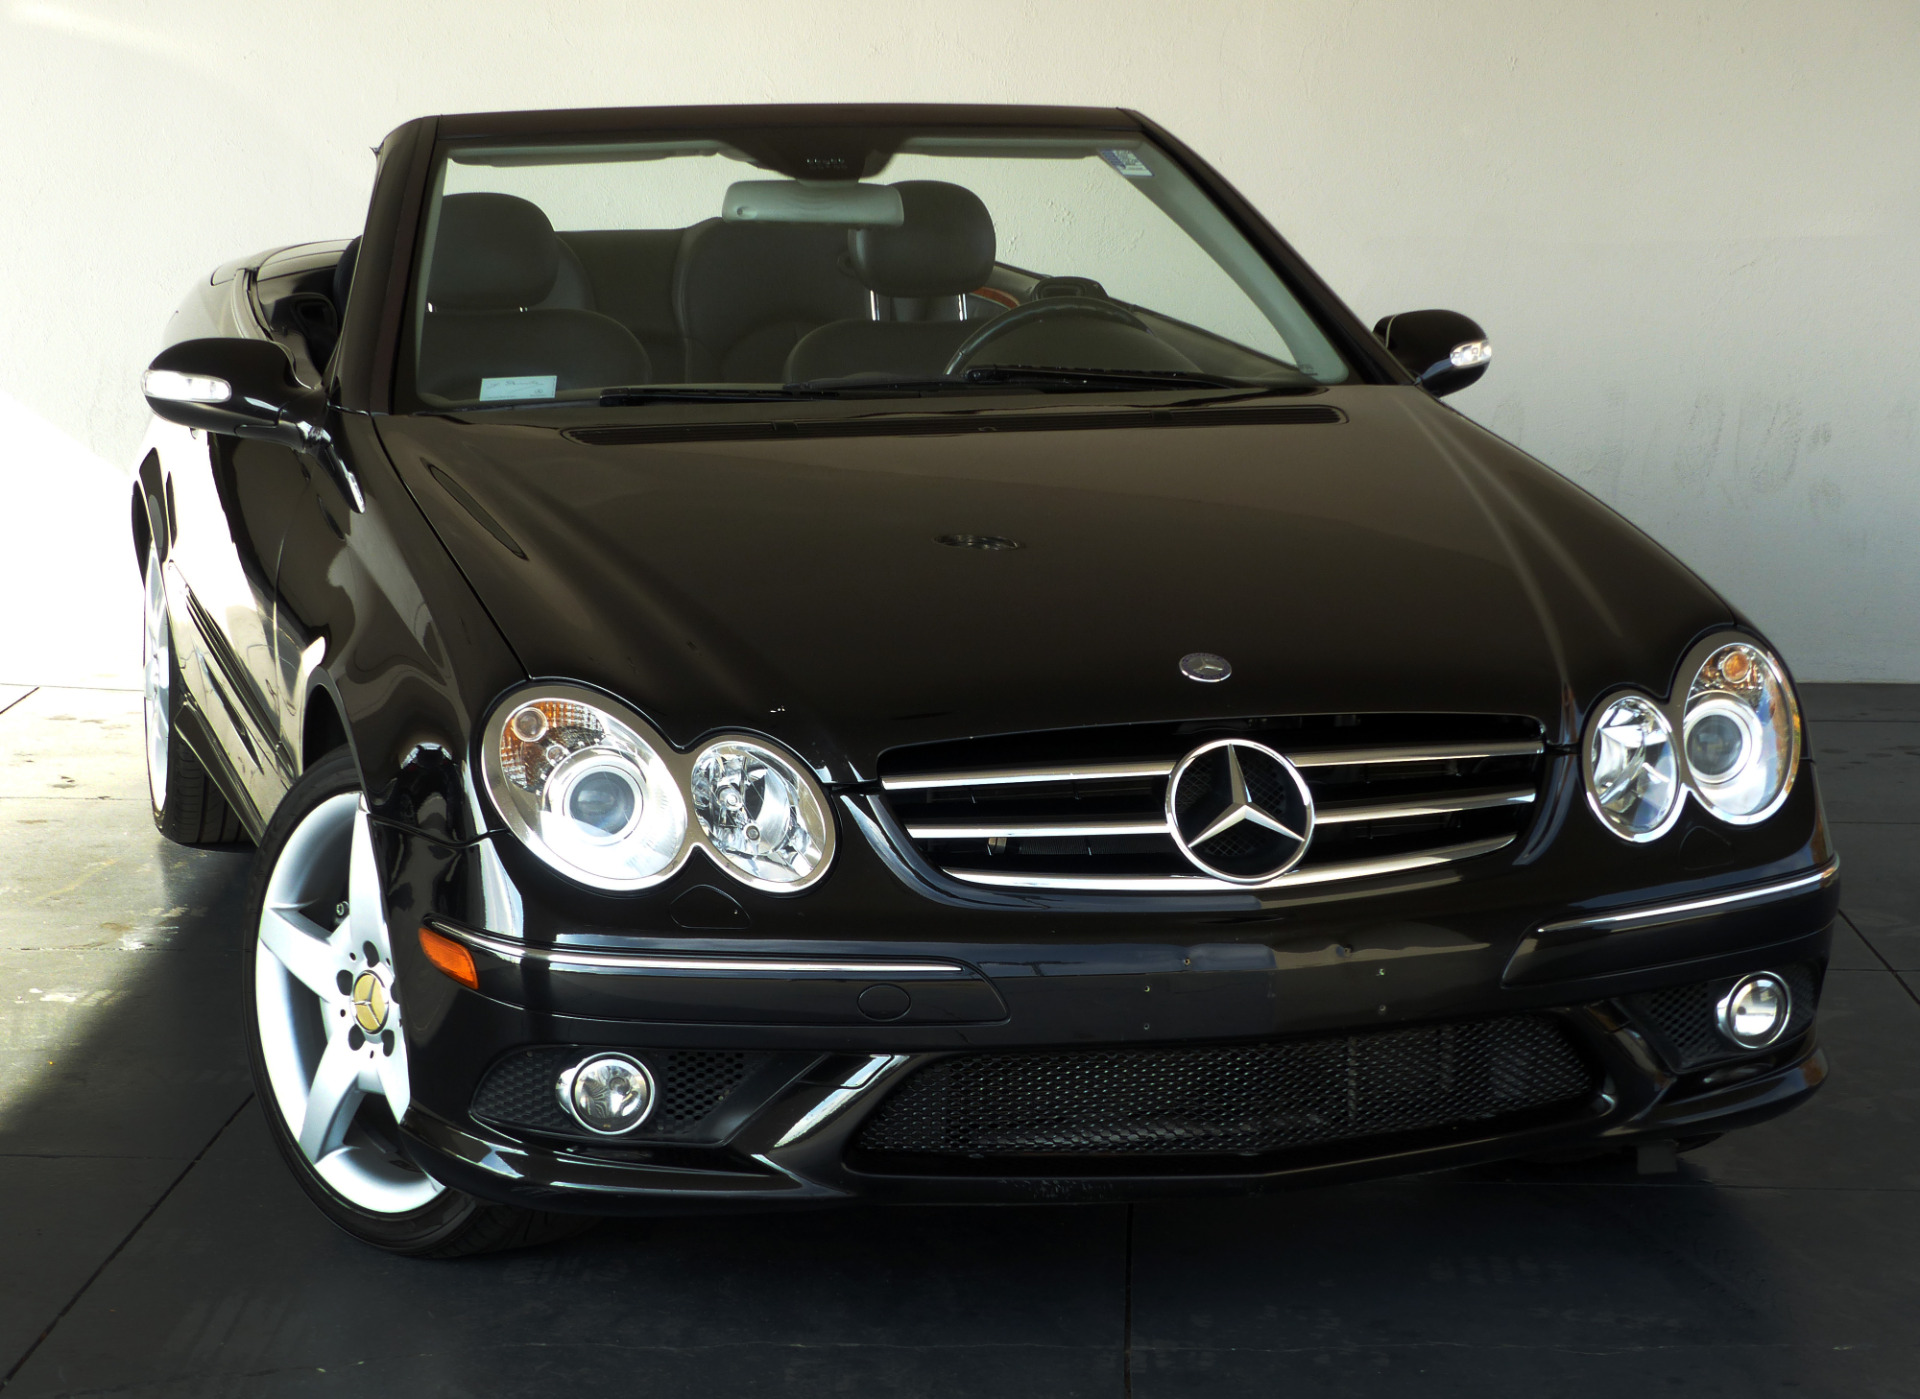 used 2006 mercedes benz clk clk 500 marietta ga. Black Bedroom Furniture Sets. Home Design Ideas